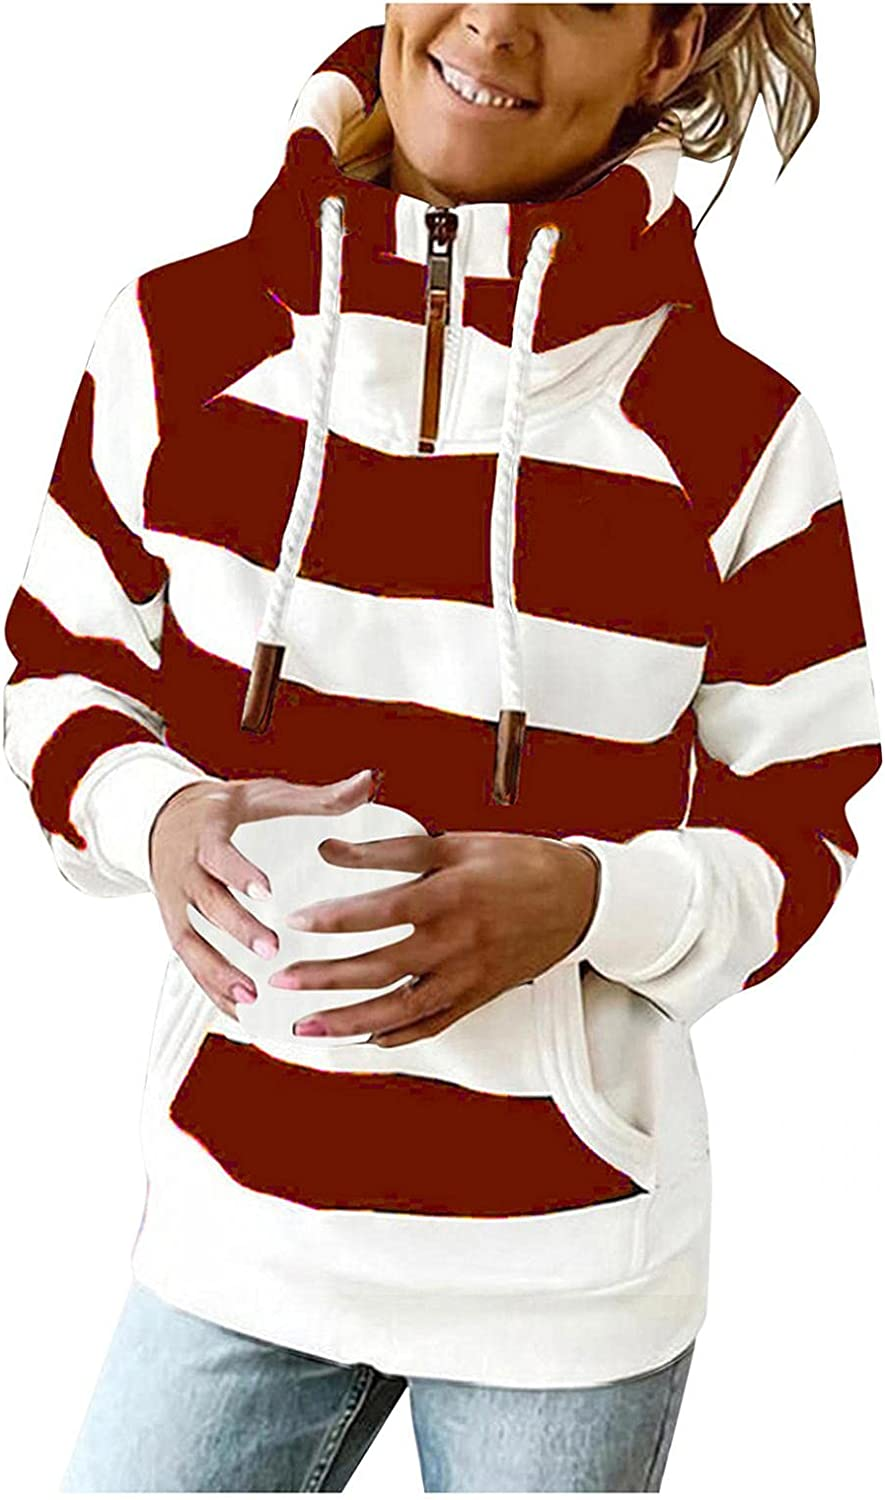 UOCUFY Hoodies for Women Zip Up,Womens Loose Drawstring Sweatshirts Striped Printed Casual Long Sleeve Pullover Tops